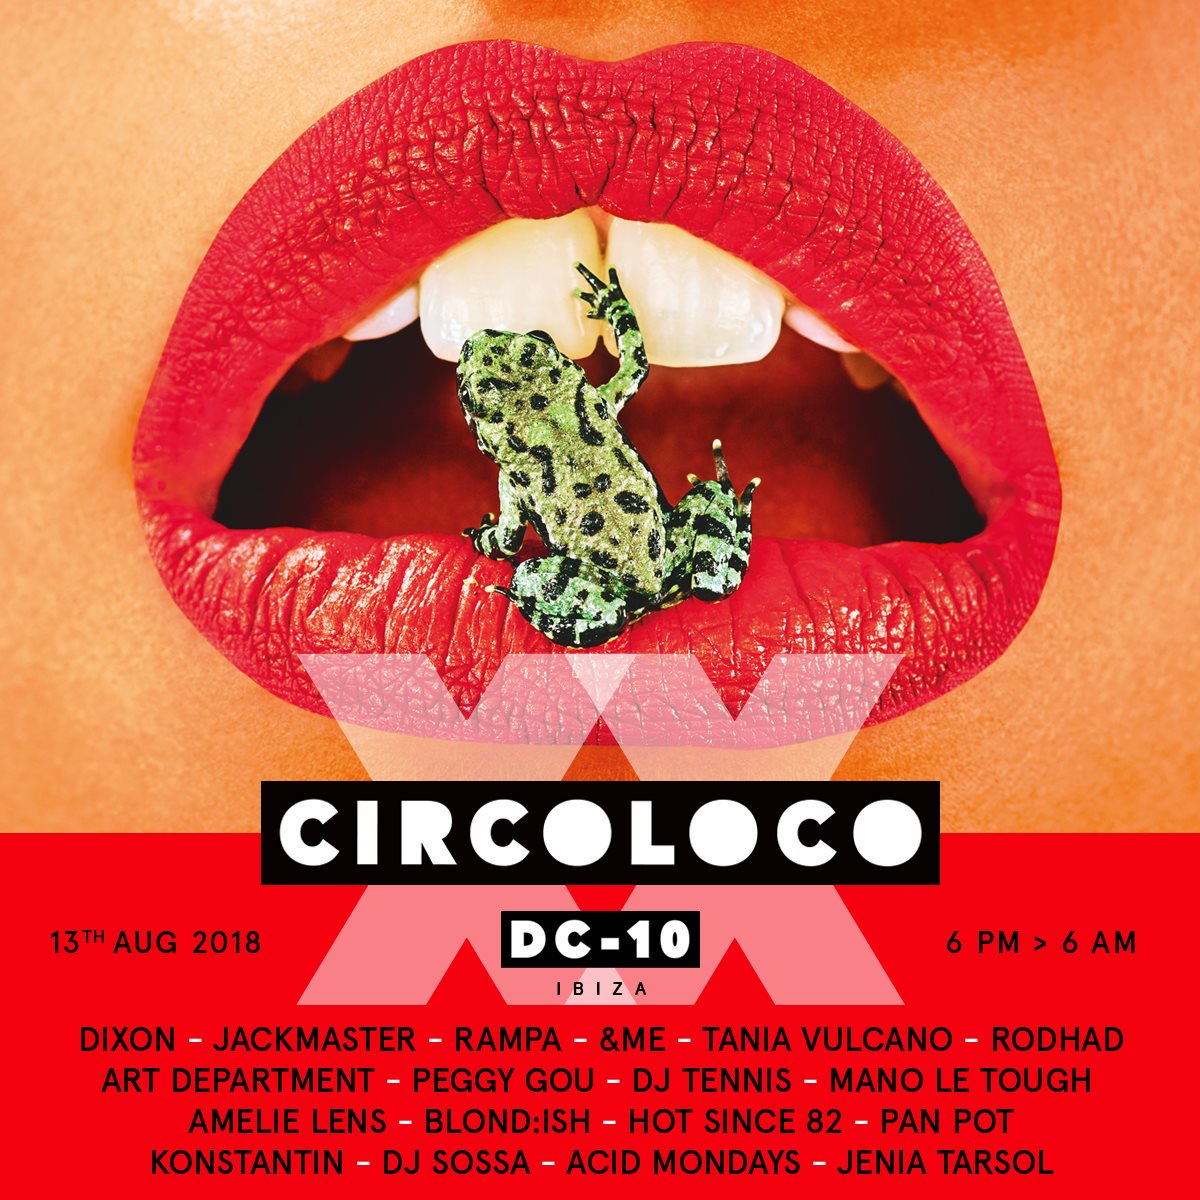 Hot Since 82 - Live at Circoloco, DC10 (Ibiza) - 13-Aug-2018